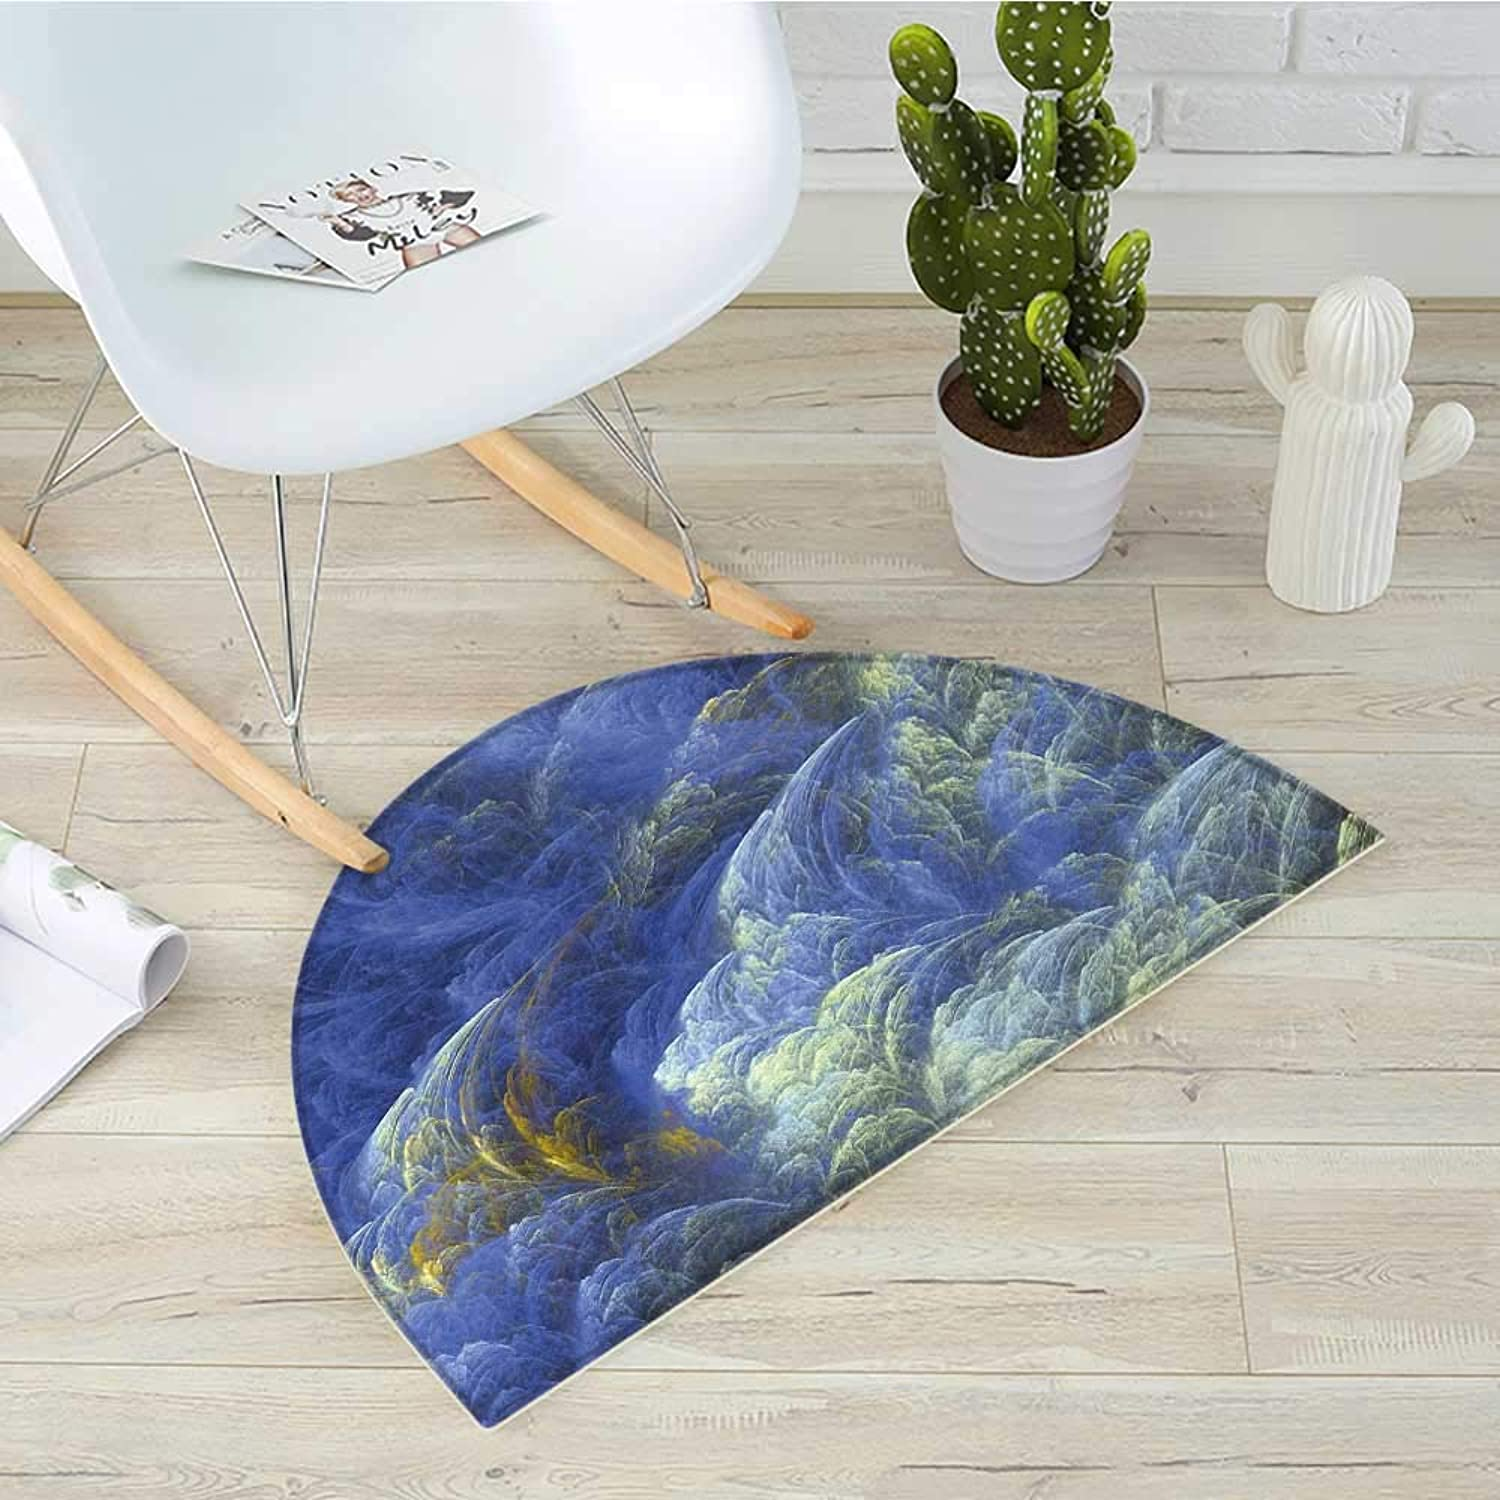 Fractal Semicircular CushionTrippy Hazy Fantasy Shapes with bluerry Effects Mystic Plasma Artful Pattern Entry Door Mat H 31.5  xD 47.2  bluee Light Yellow